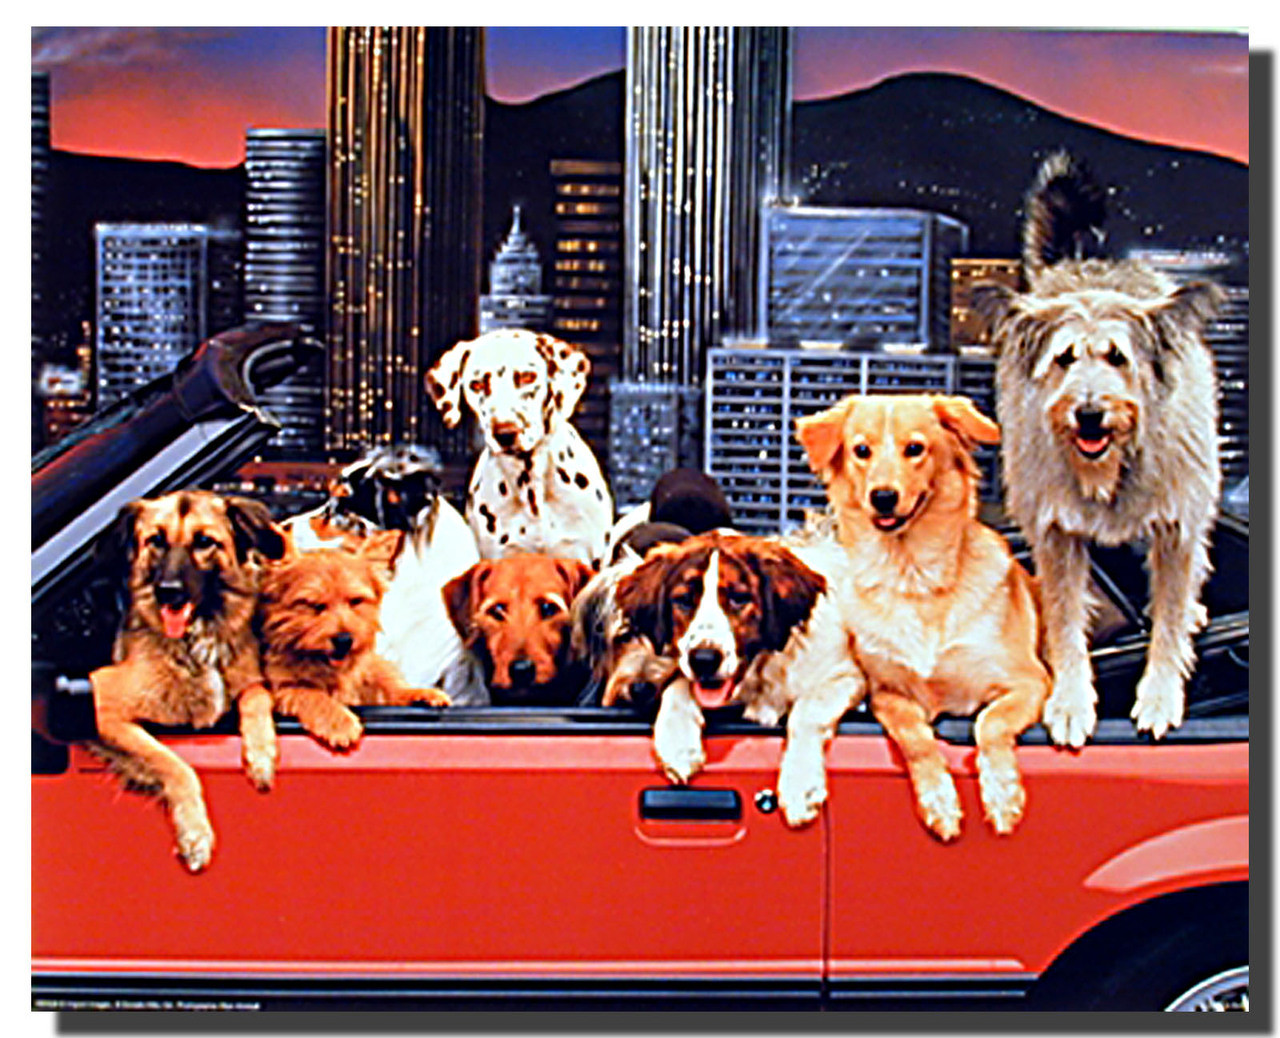 Dogs Poster Convertible Animal Posters,Standard House Brick Dimensions Australia